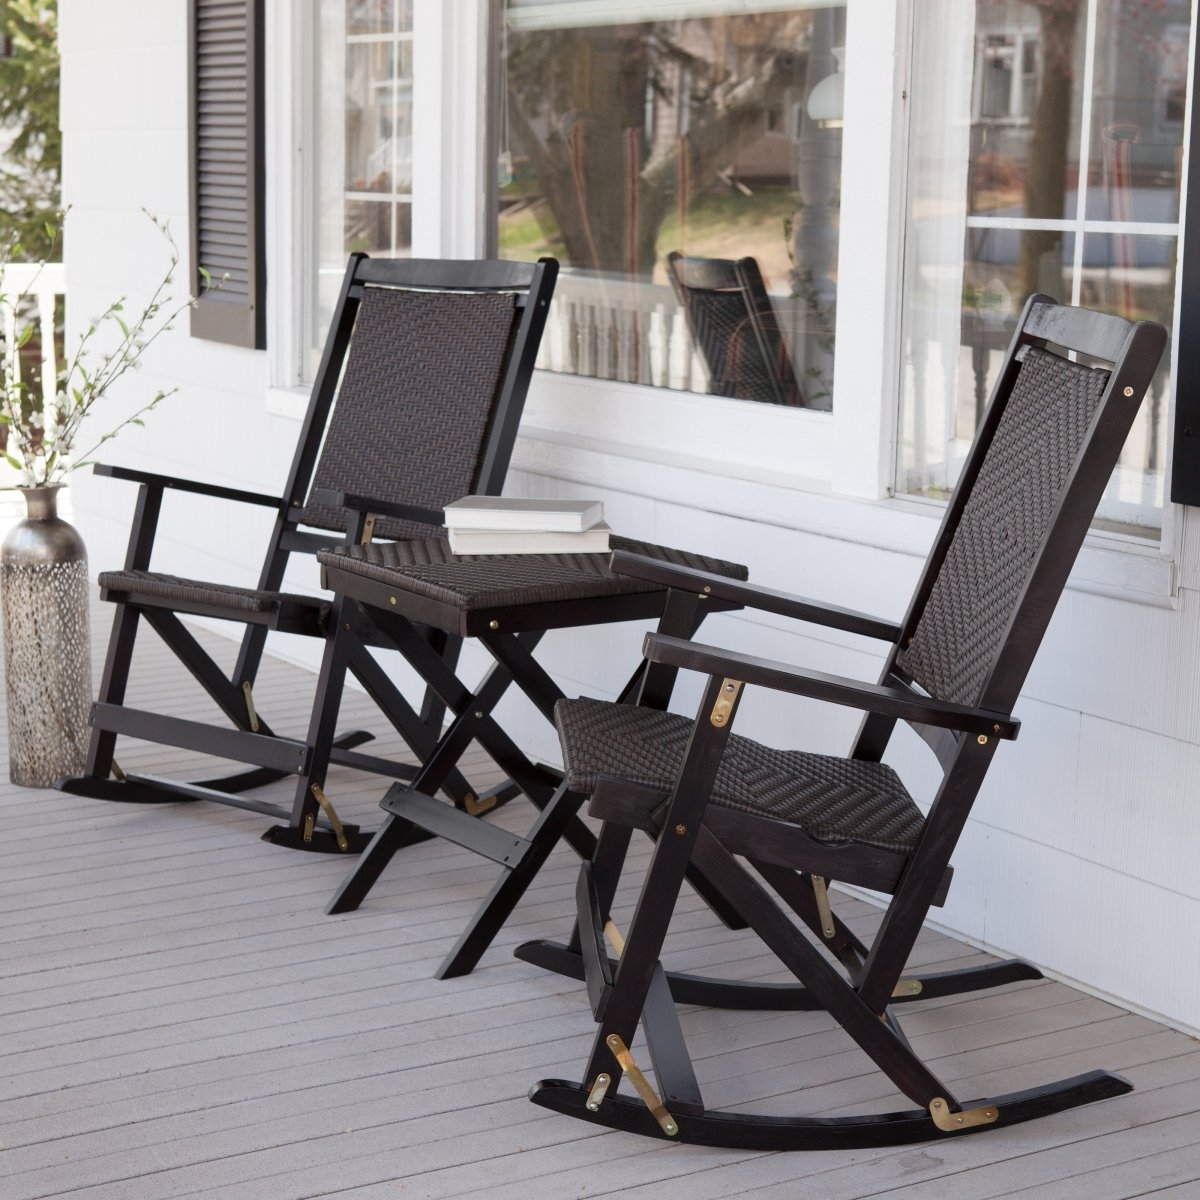 Patio Rocking Chairs Black : Spectacular And Sensational Patio For Outdoor Patio Rocking Chairs (View 7 of 15)